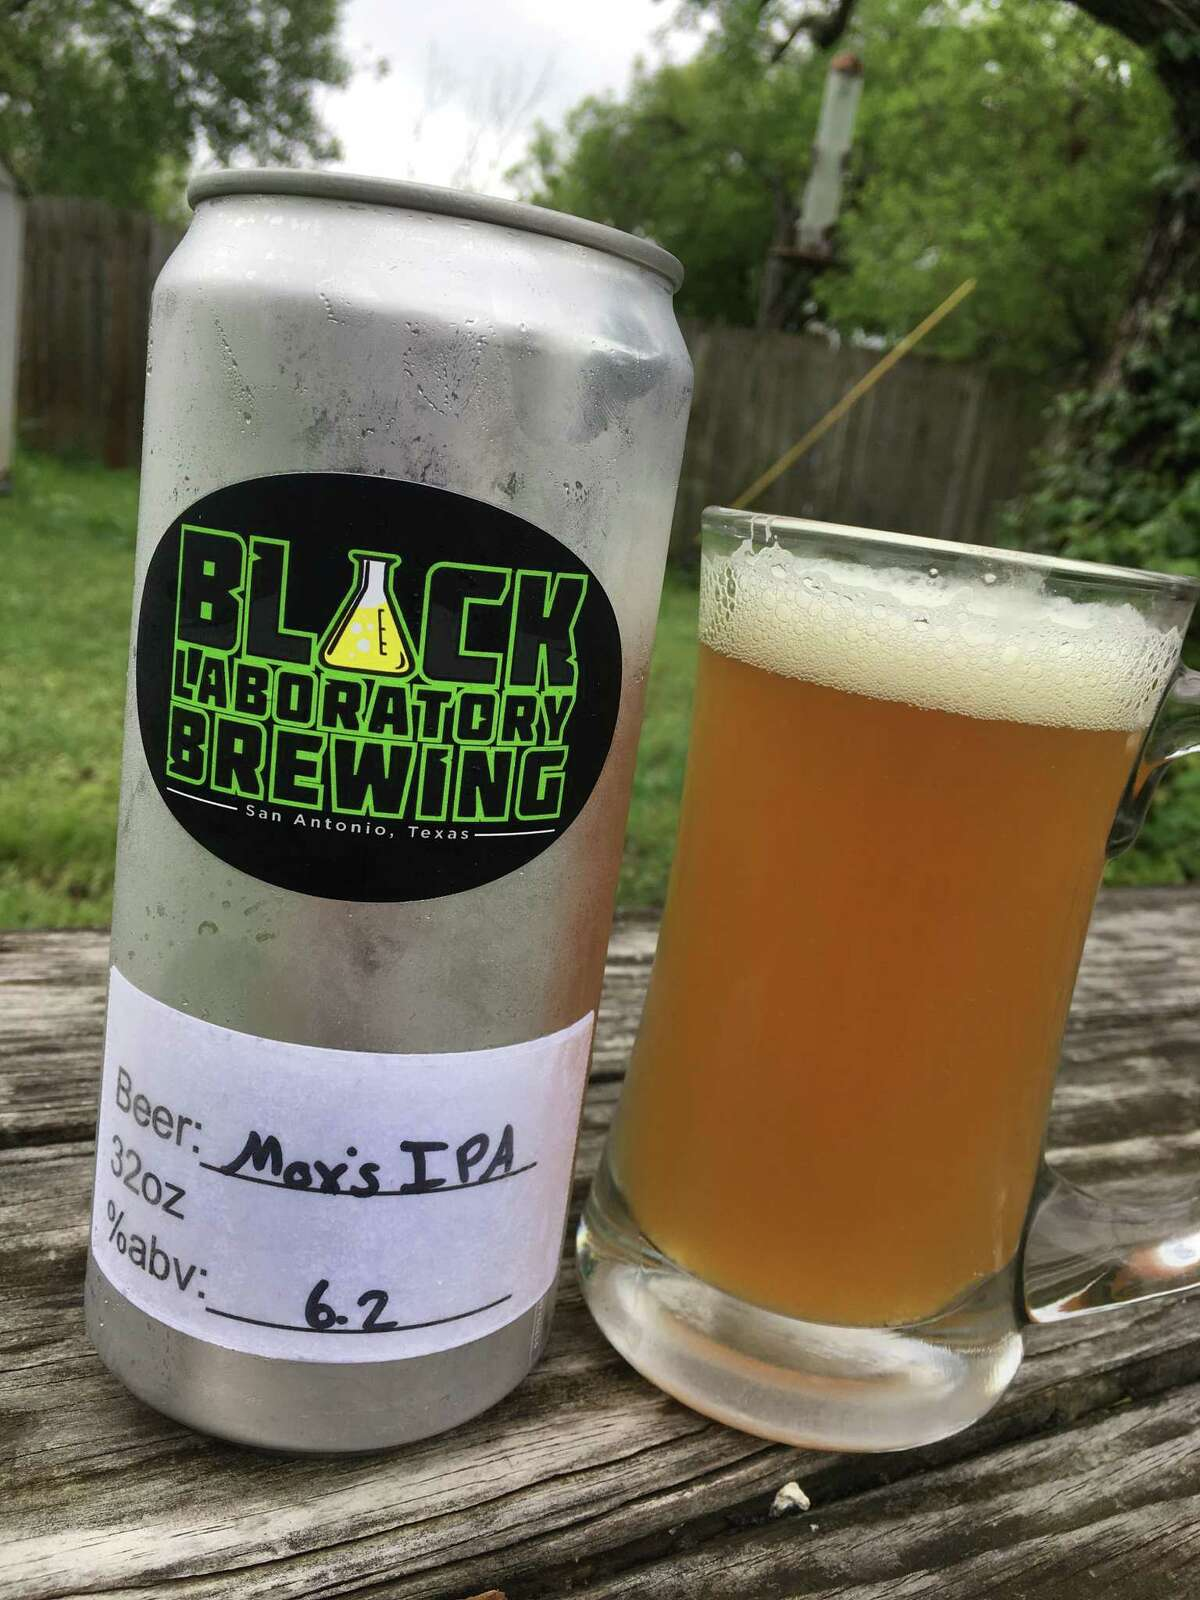 Max's IPA is one of five beers currently available at Black Laboratory Brewing.